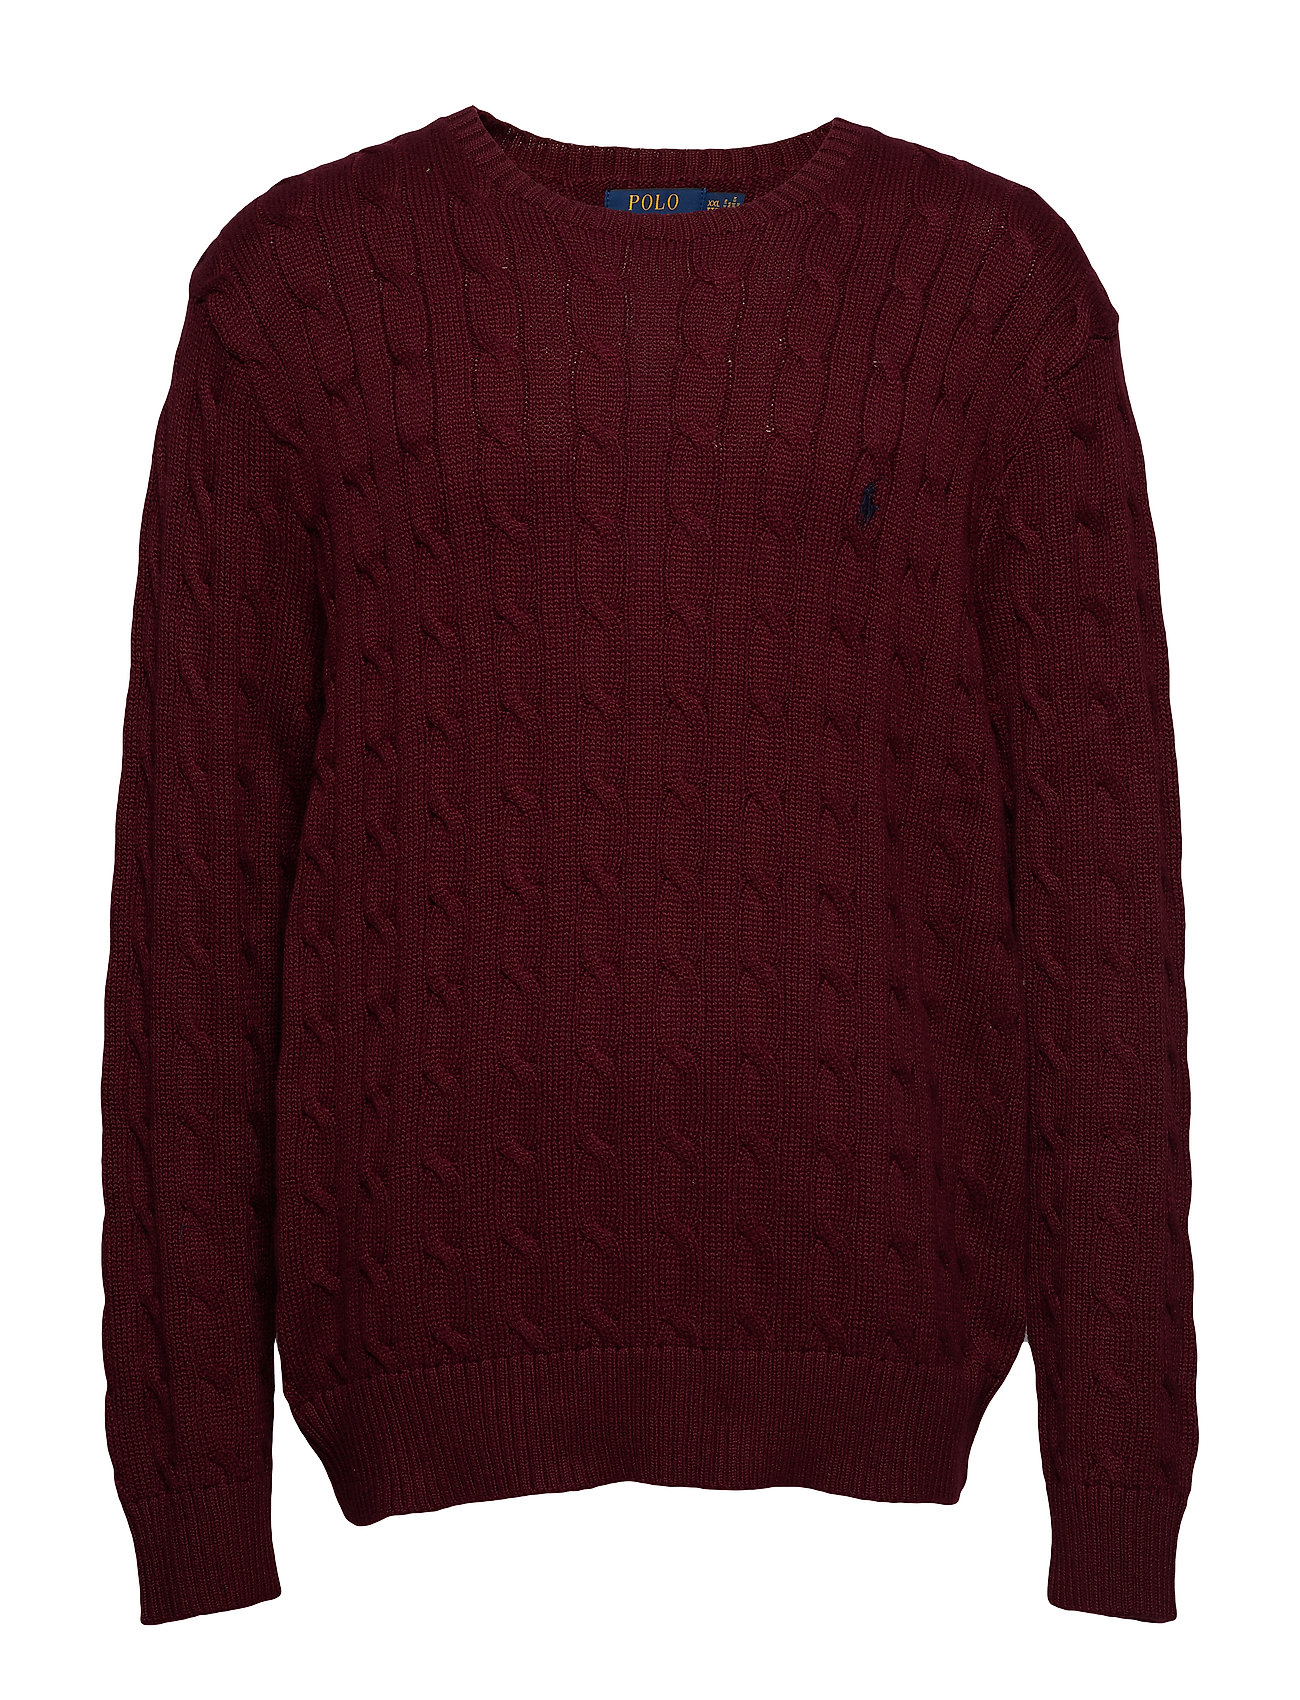 Polo Ralph Lauren Cable-Knit Cotton Sweater - CLASSIC WINE